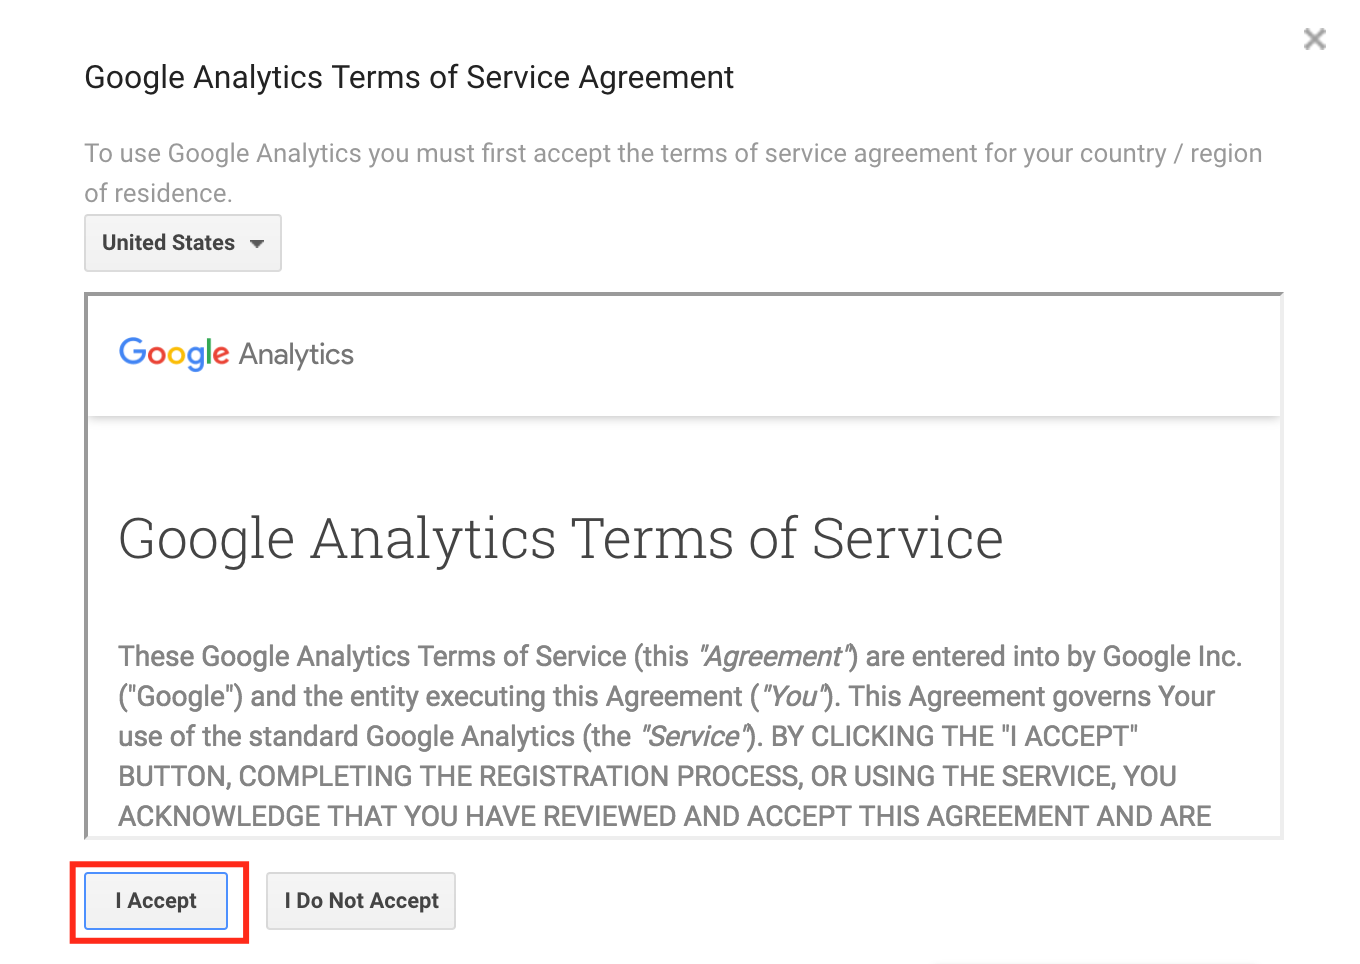 Accept terms of service on Google Analytics